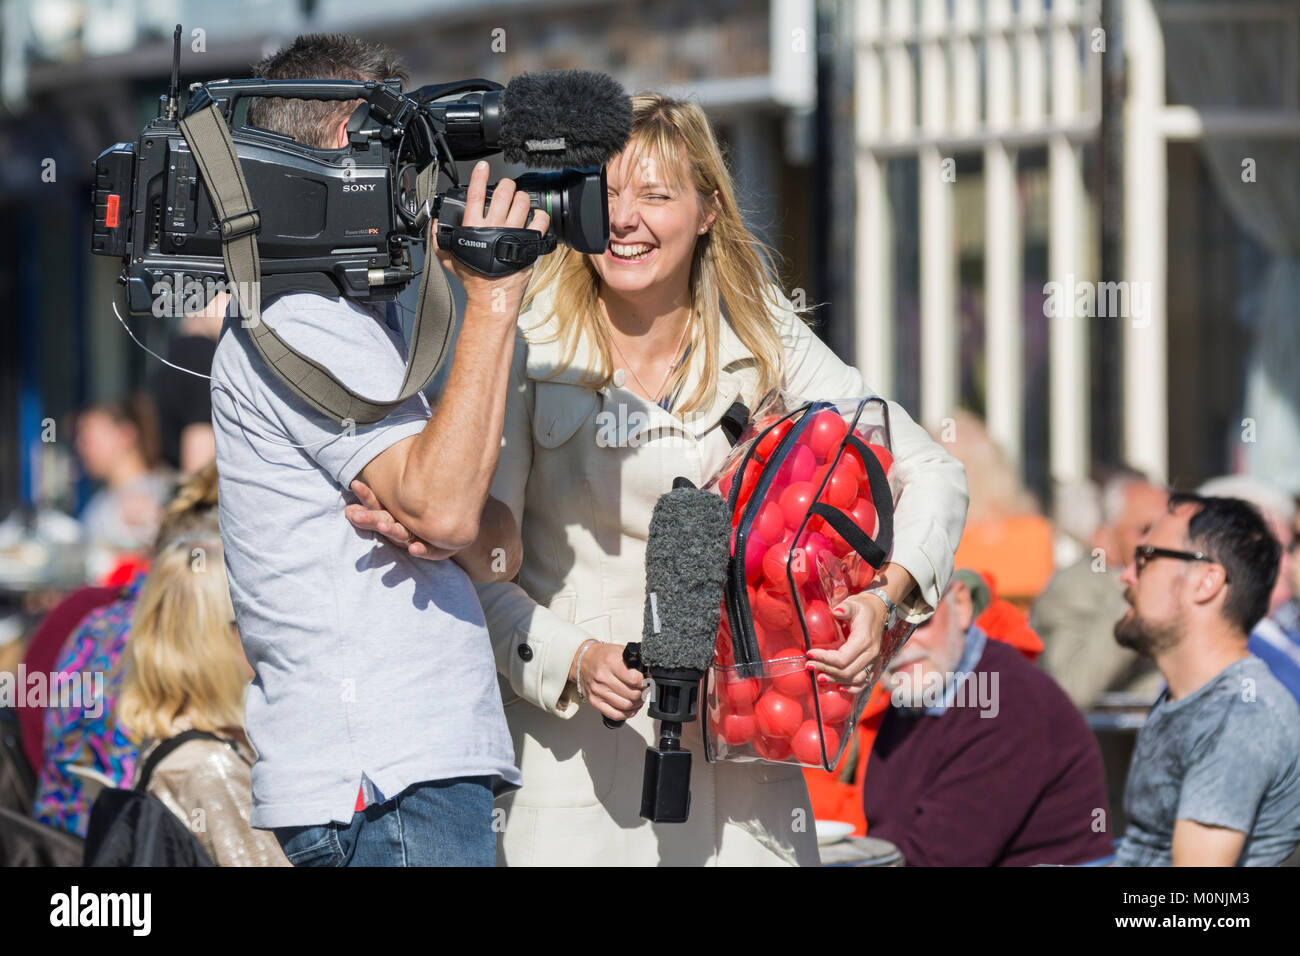 Female TV presenter laughing and smiling on the job, on an outside broadcast in the UK. - Stock Image